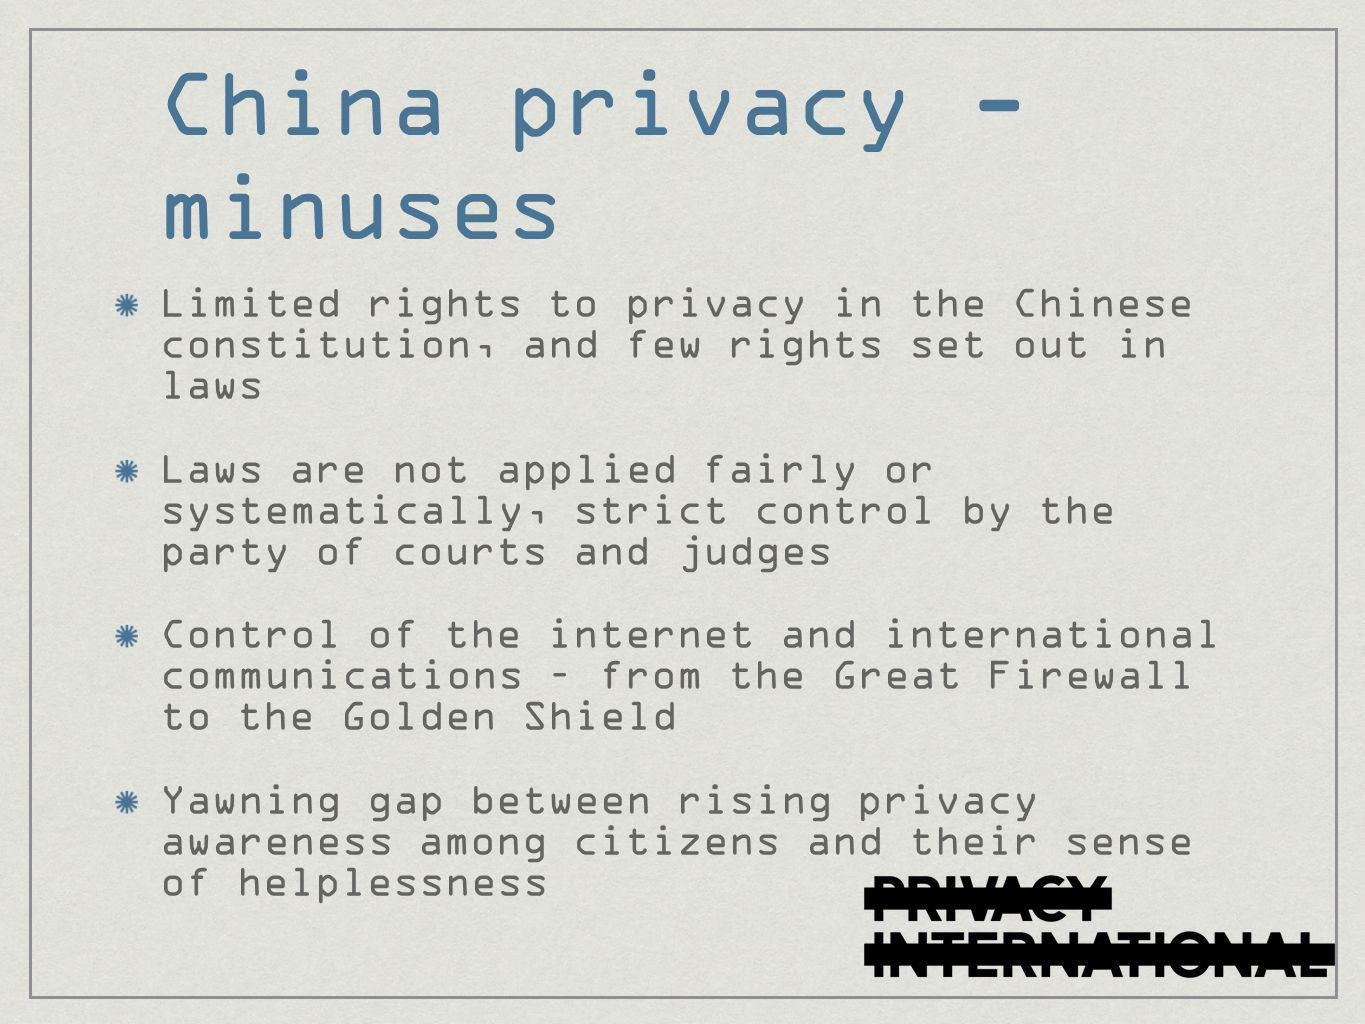 China privacy - minuses Limited rights to privacy in the Chinese constitution, and few rights set out in laws Laws are not applied fairly or systematically, strict control by the party of courts and judges Control of the internet and international communications – from the Great Firewall to the Golden Shield Yawning gap between rising privacy awareness among citizens and their sense of helplessness